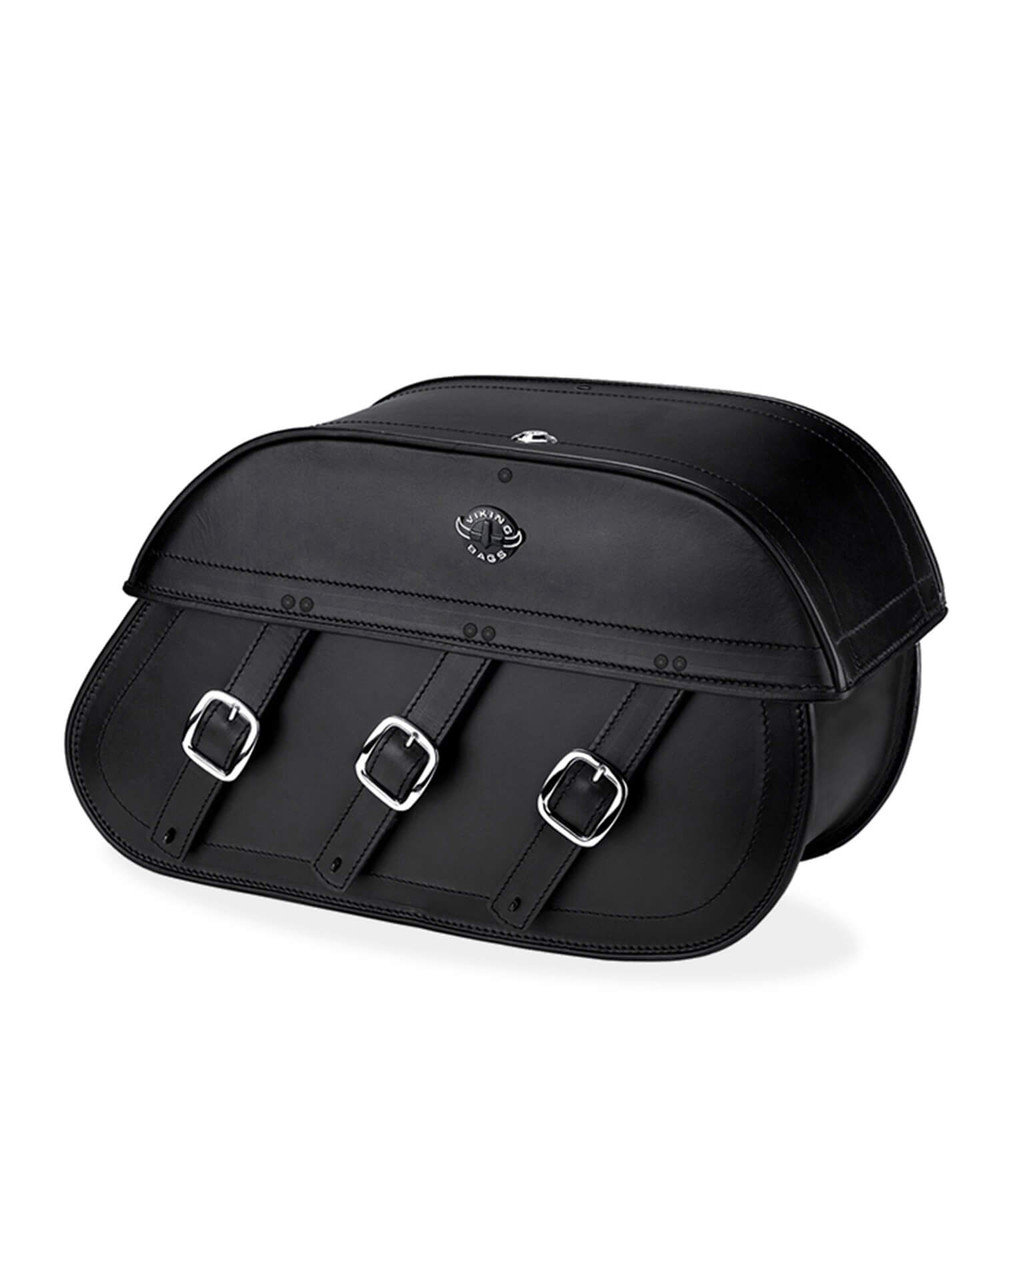 Victory Boardwalk Trianon Motorcycle Saddlebags Main View